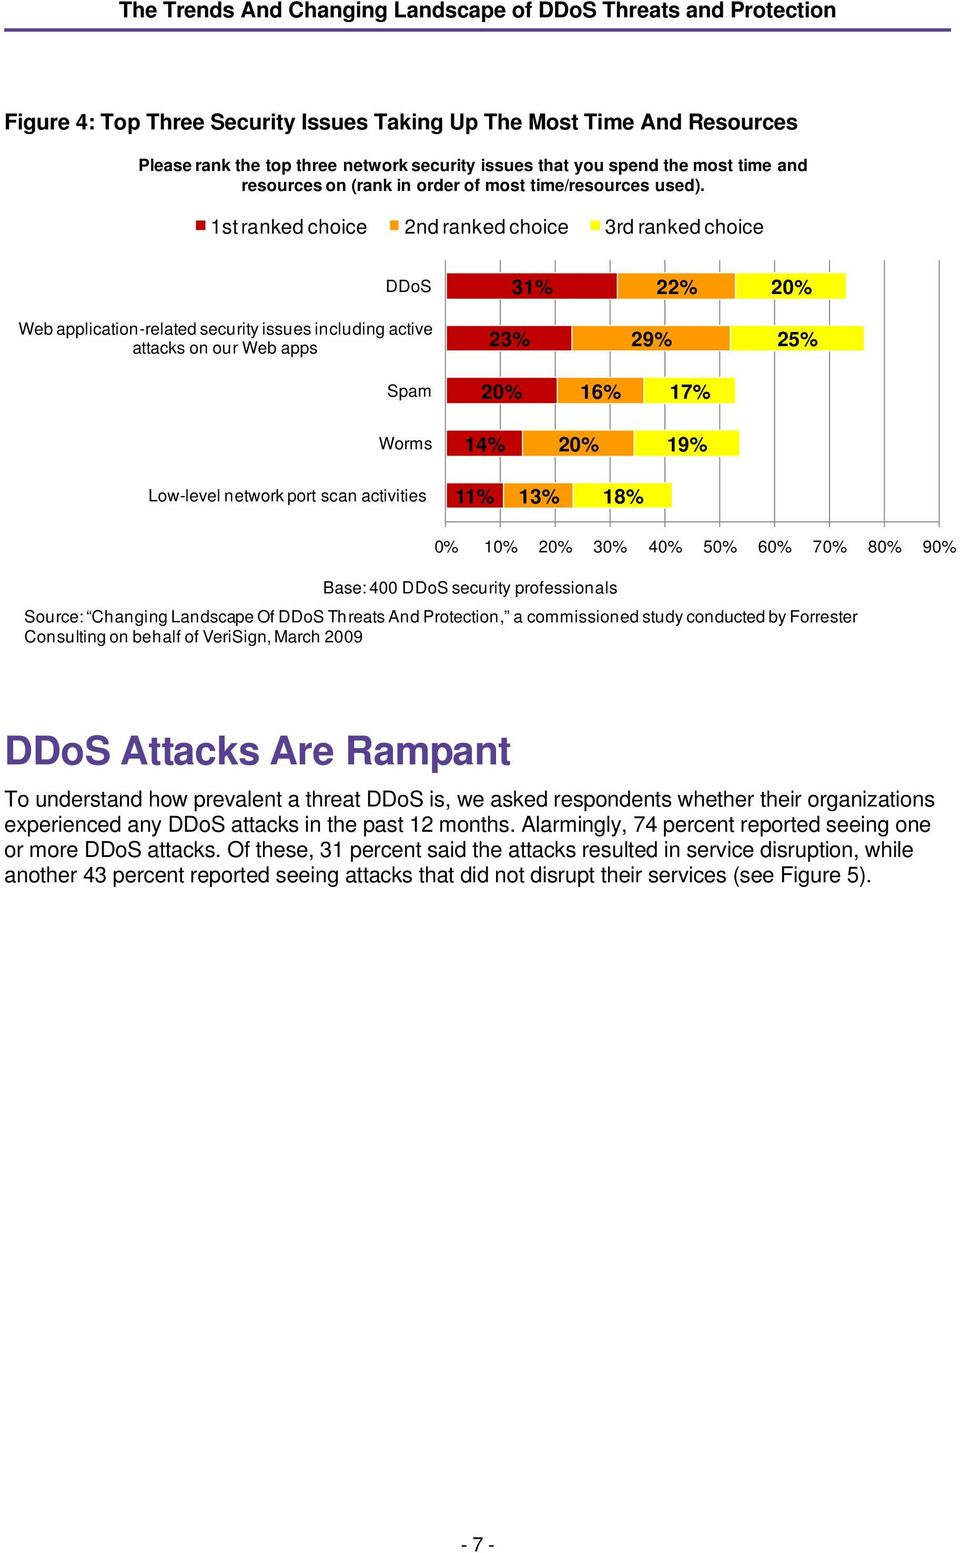 1st ranked choice 2nd ranked choice 3rd ranked choice DDoS 31% 22% 20% Web application-related security issues including active attacks on our Web apps 23% 29% 25% Spam 20% 16% 17% Worms 14% 20% 19%